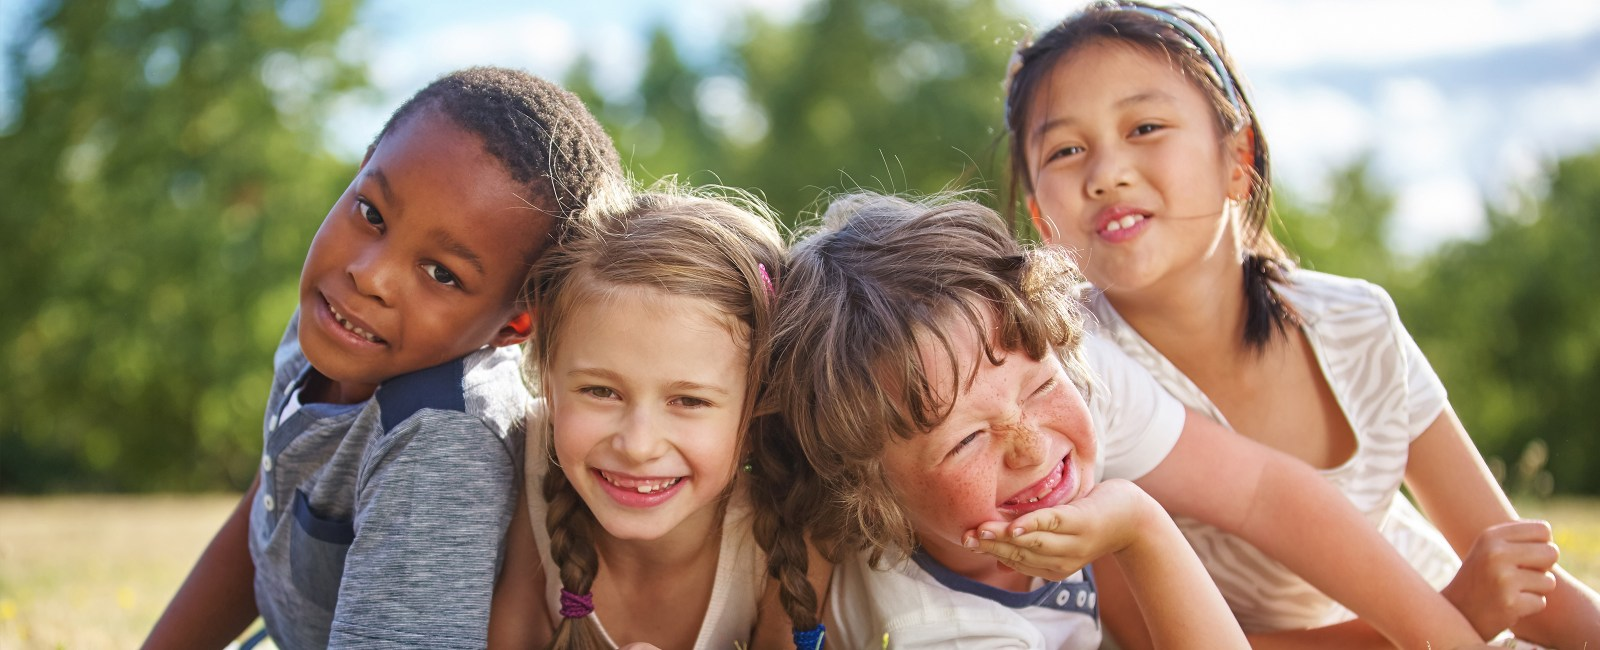 Four diverse kids gather close and smile